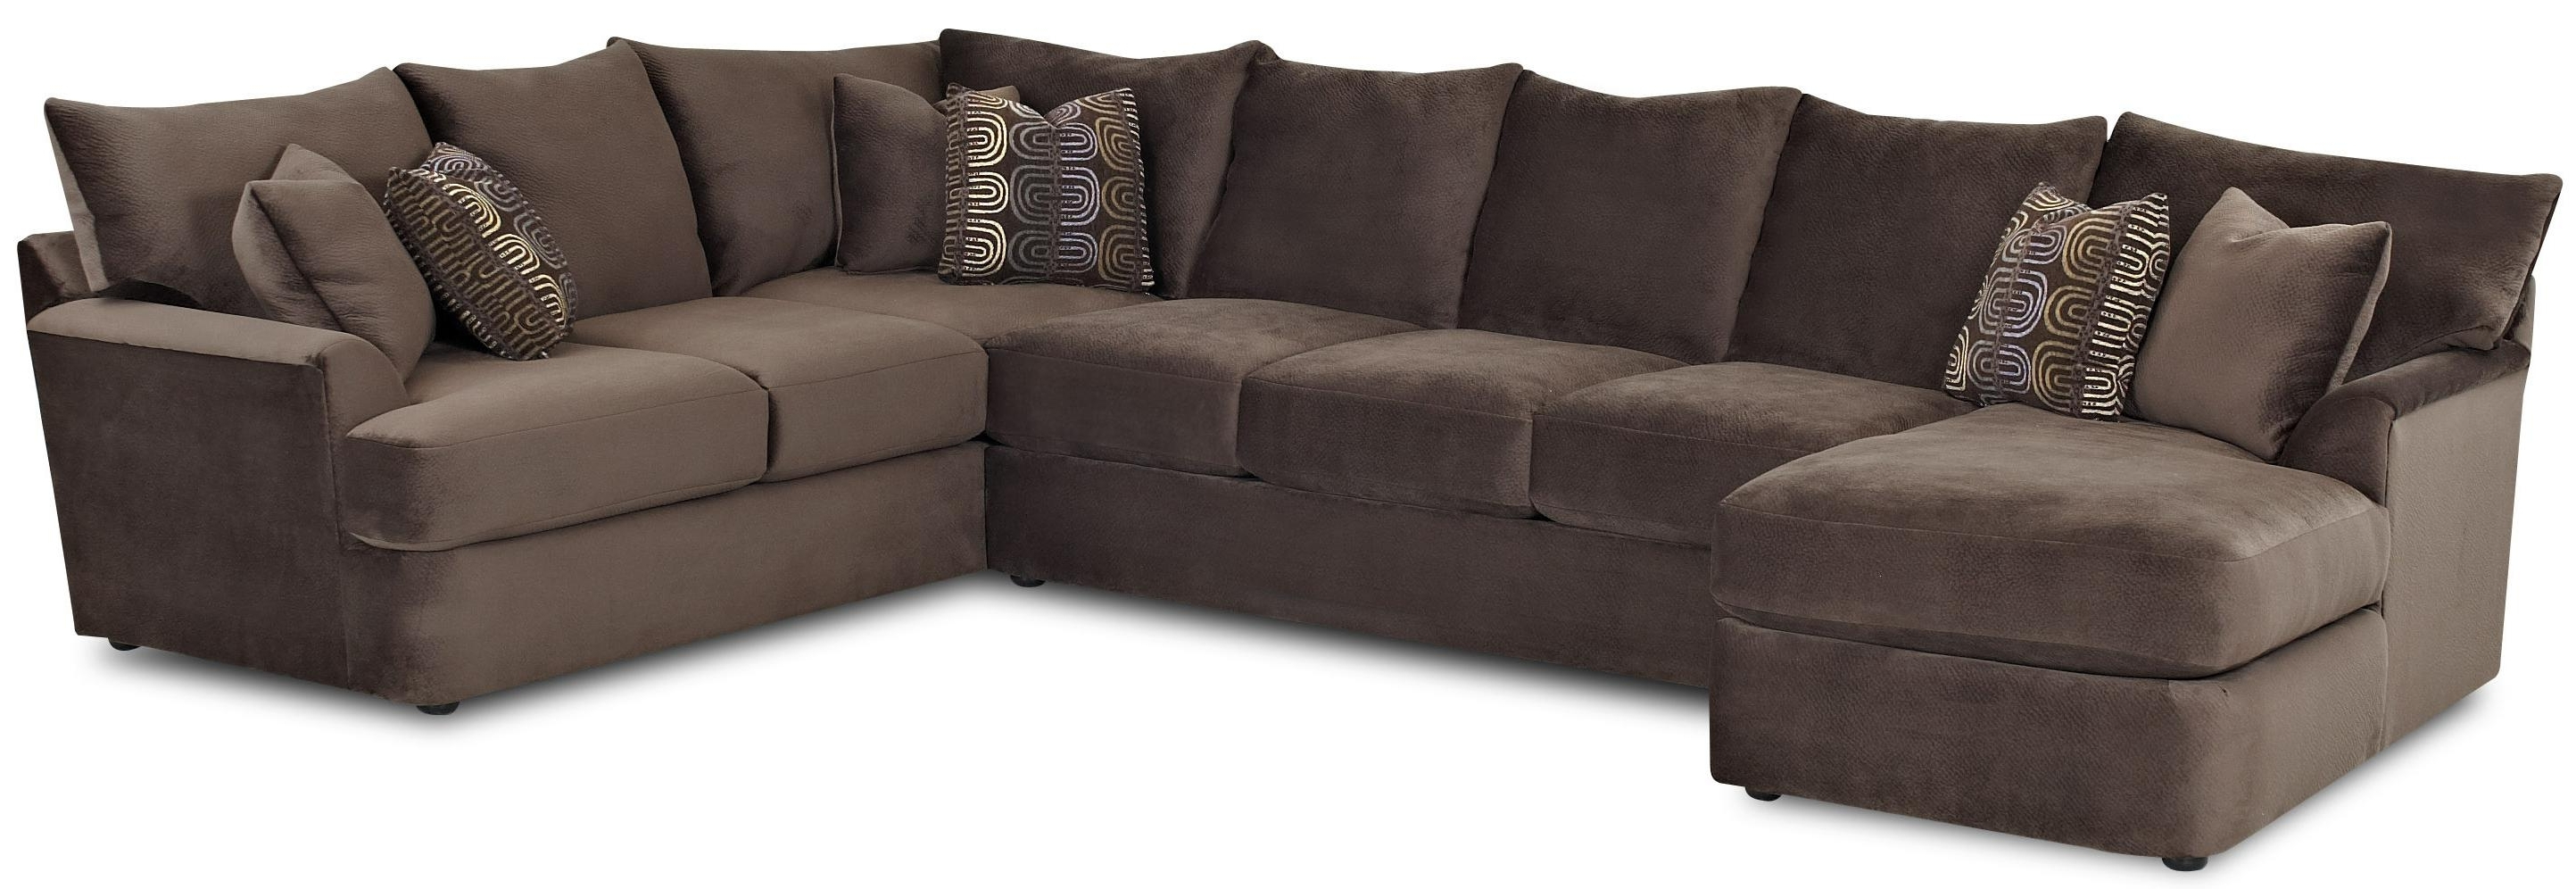 Wolf And With Regard To Sectional Sofas That Can Be Rearranged (View 12 of 20)